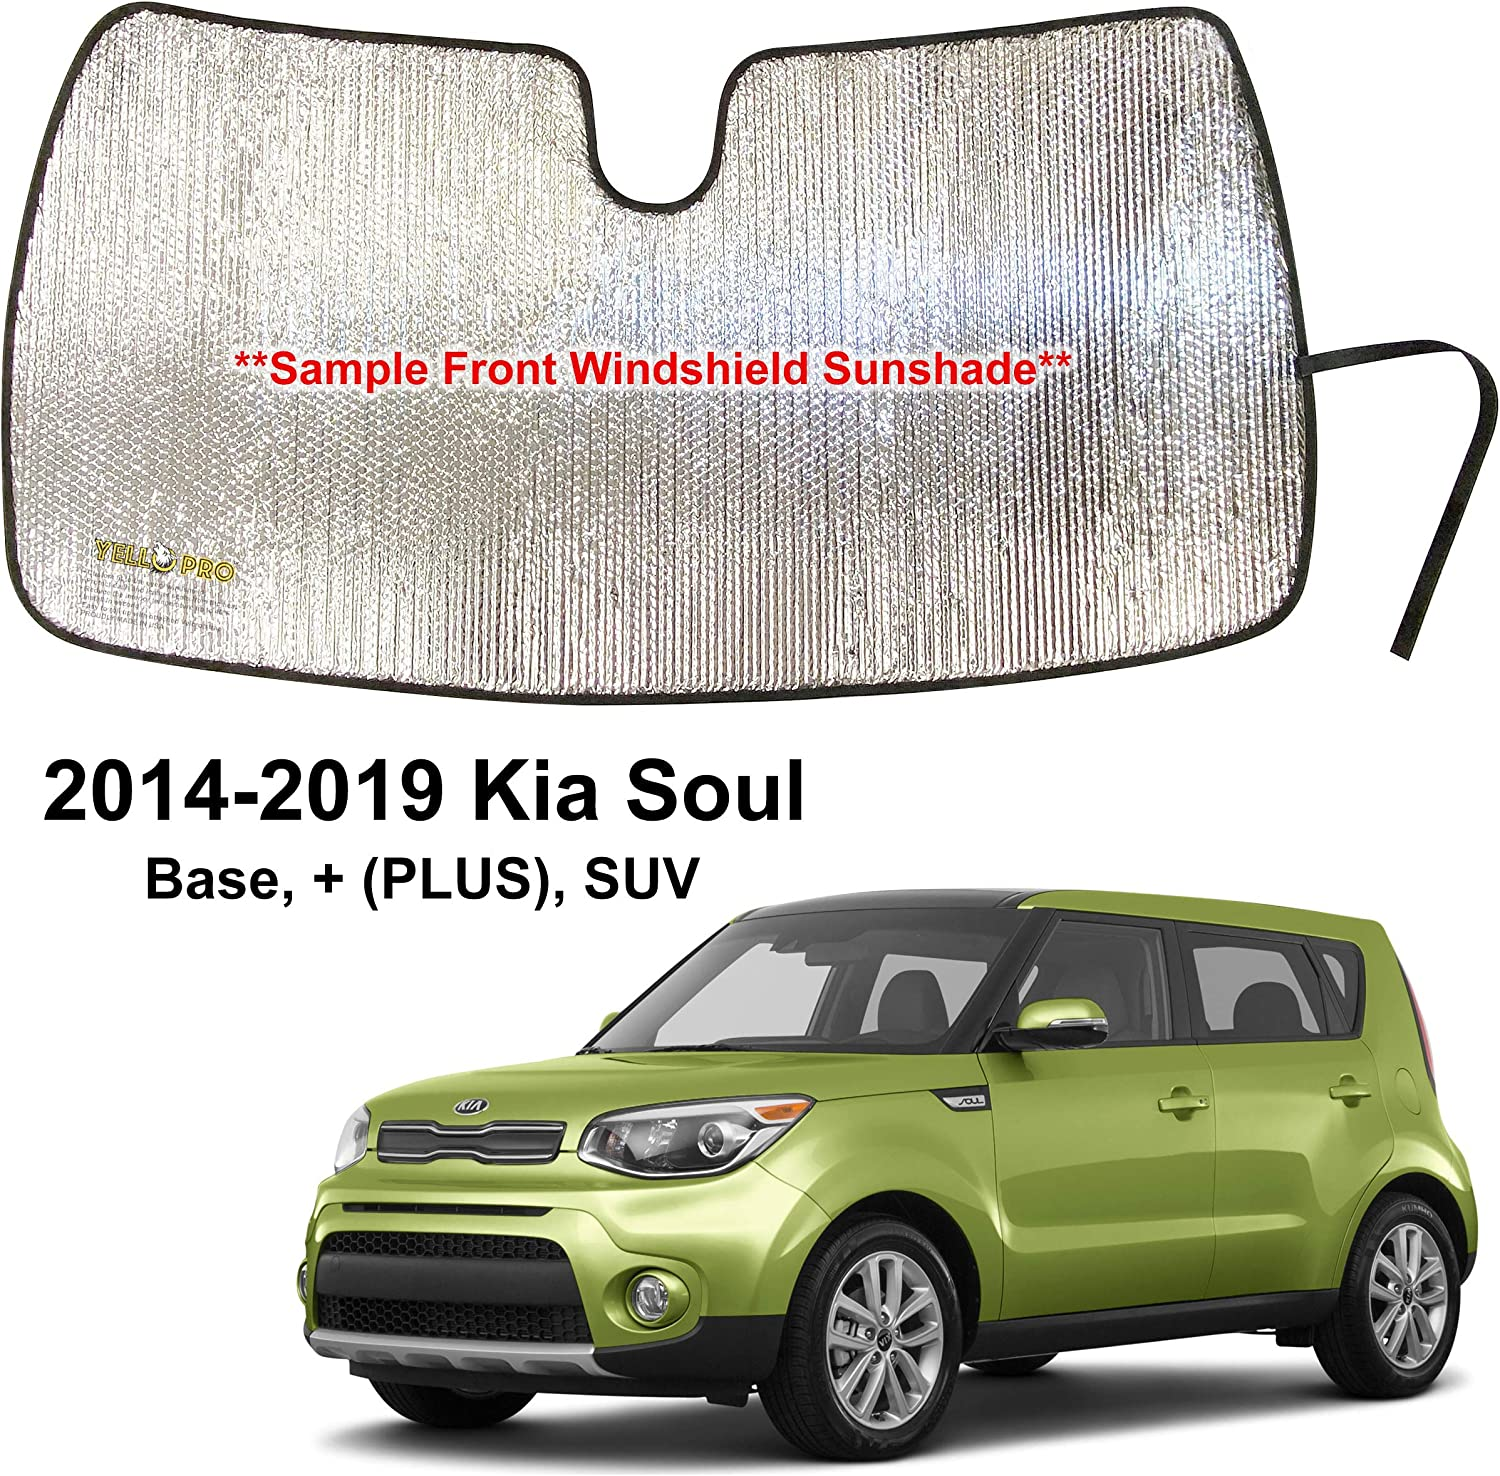 YelloPro Custom Fit Automotive Reflective Front Windshield Sunshade Accessories UV Reflector Sun Protection for 2014 2015 2016 2017 2018 2019 Kia Soul Base, (Plus), SUV